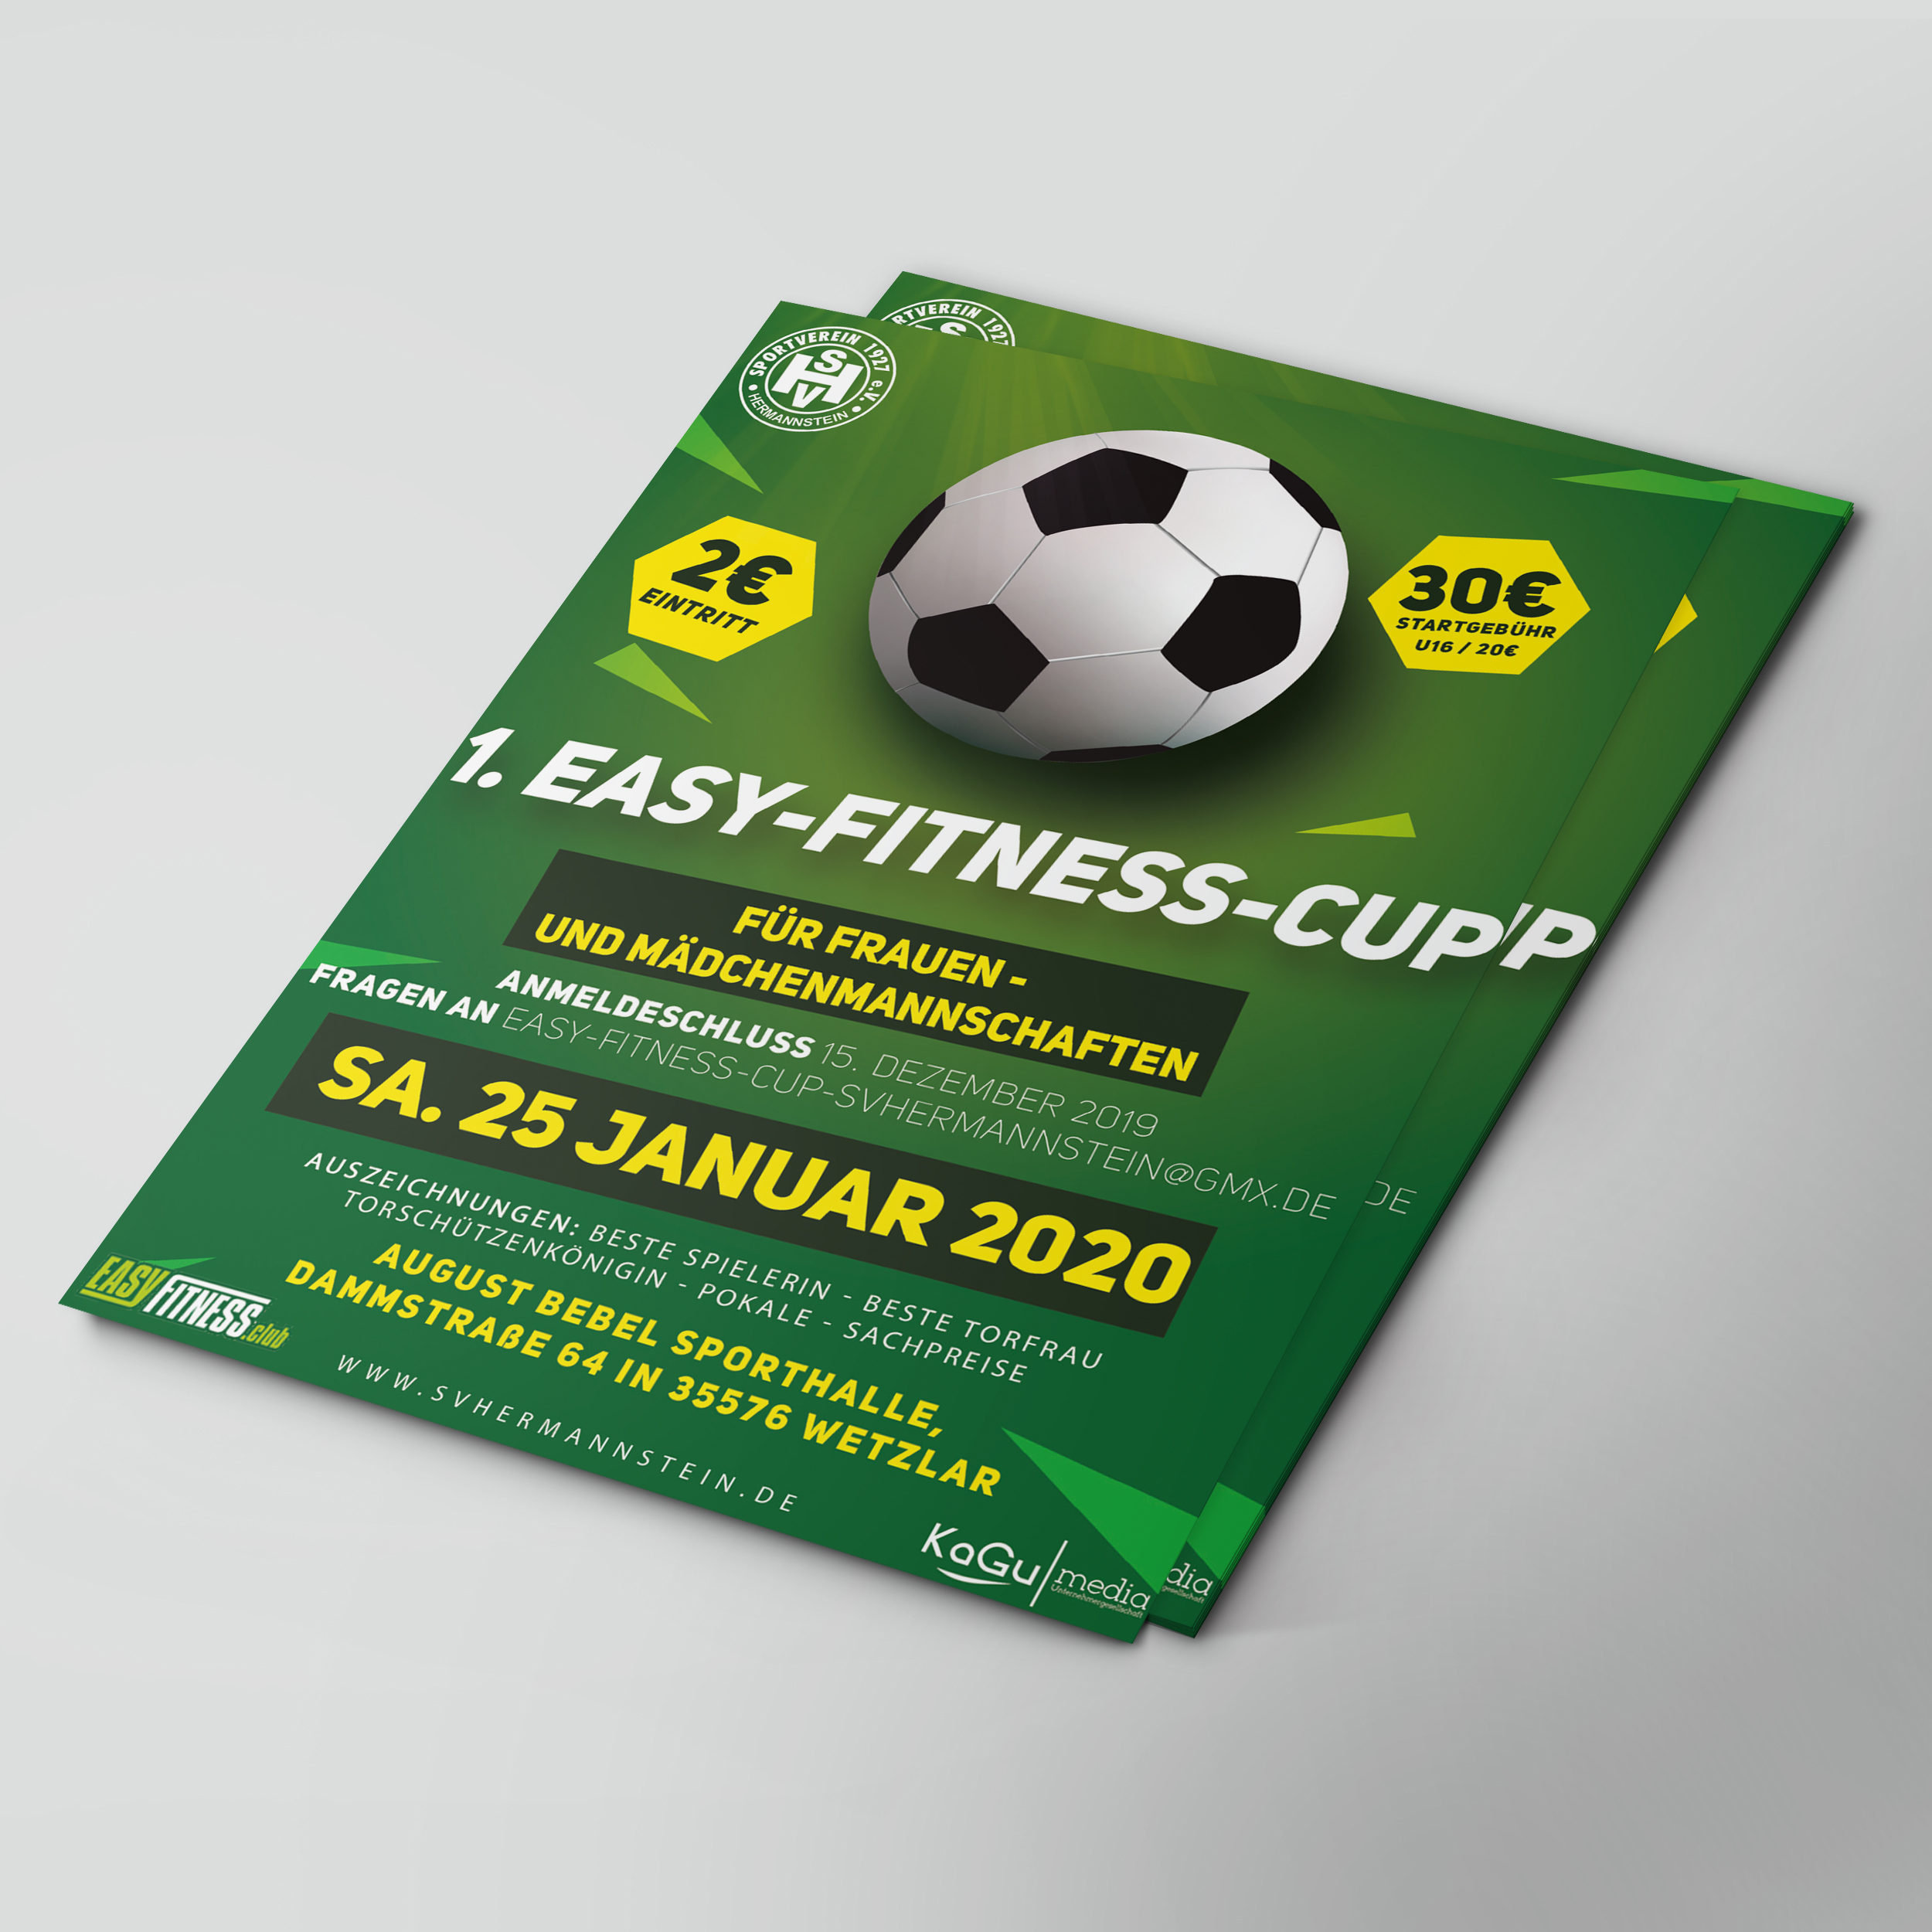 easy-fitness-cup-2019-flyer